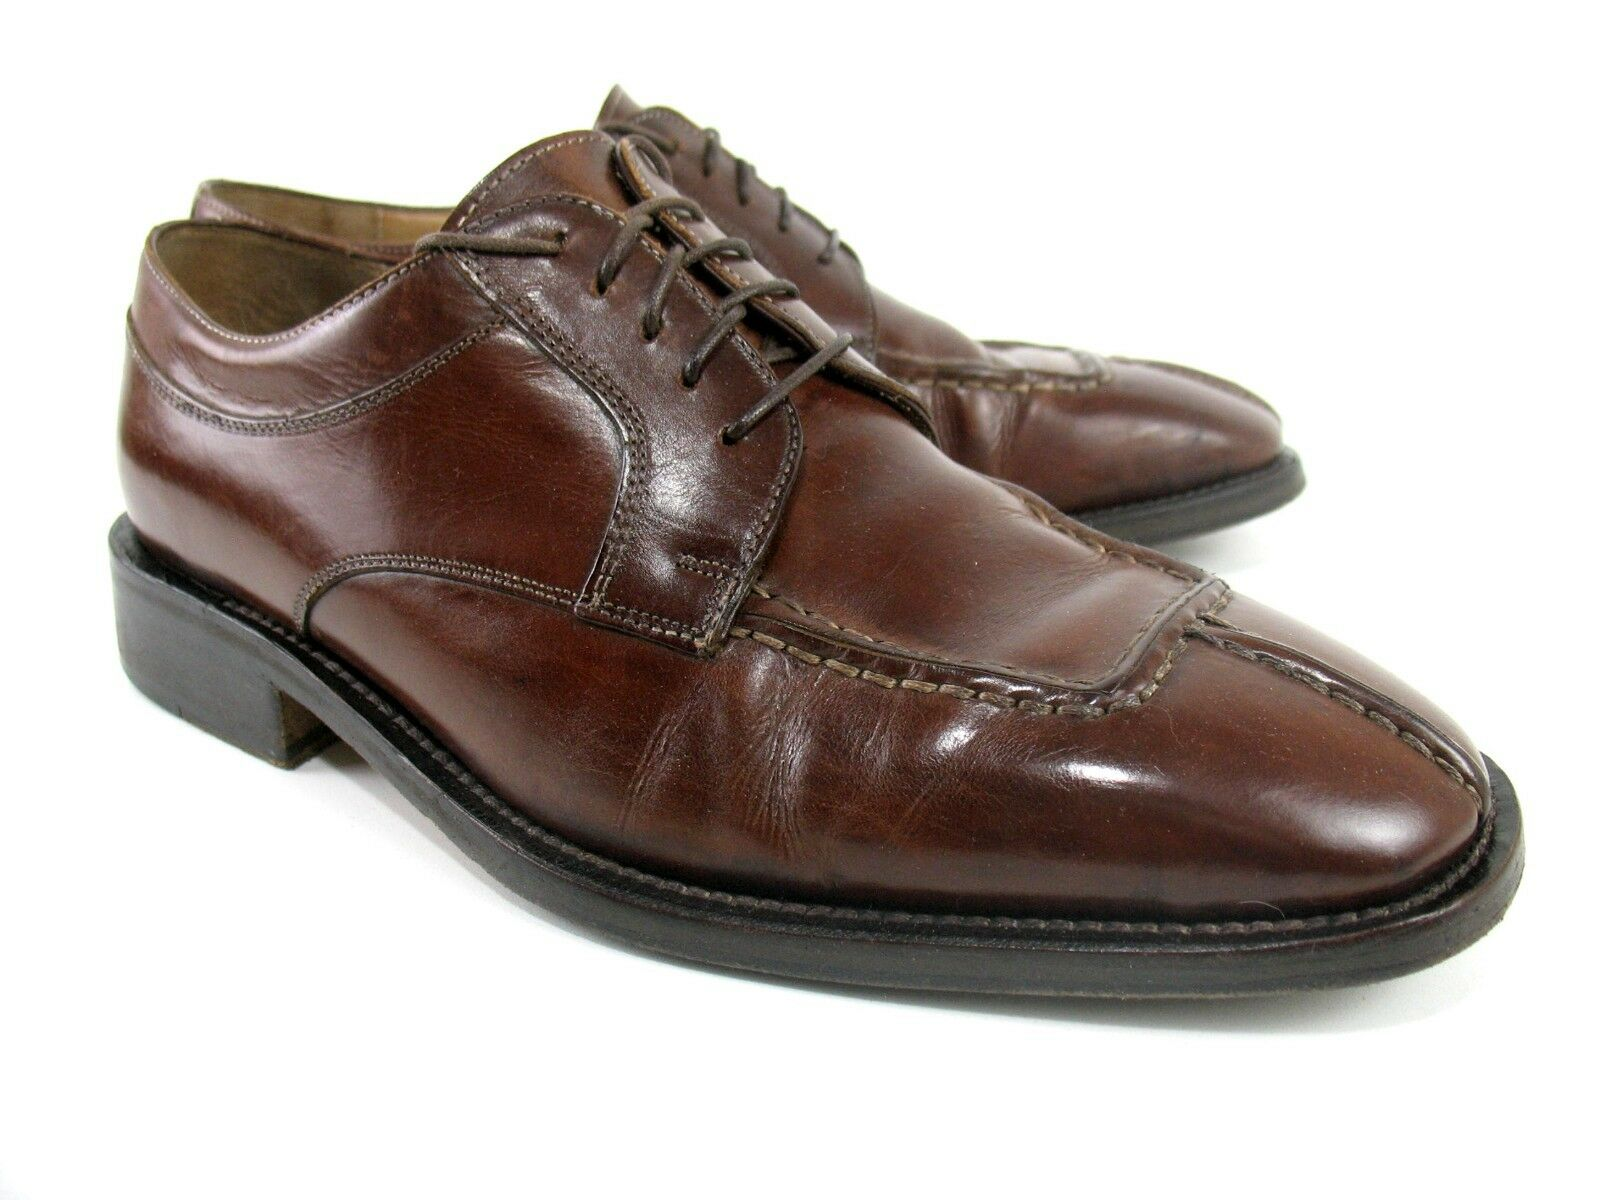 Cole Haan Country - Split Toe Oxfords - Brown Pelle - C00547 - Size 9 M